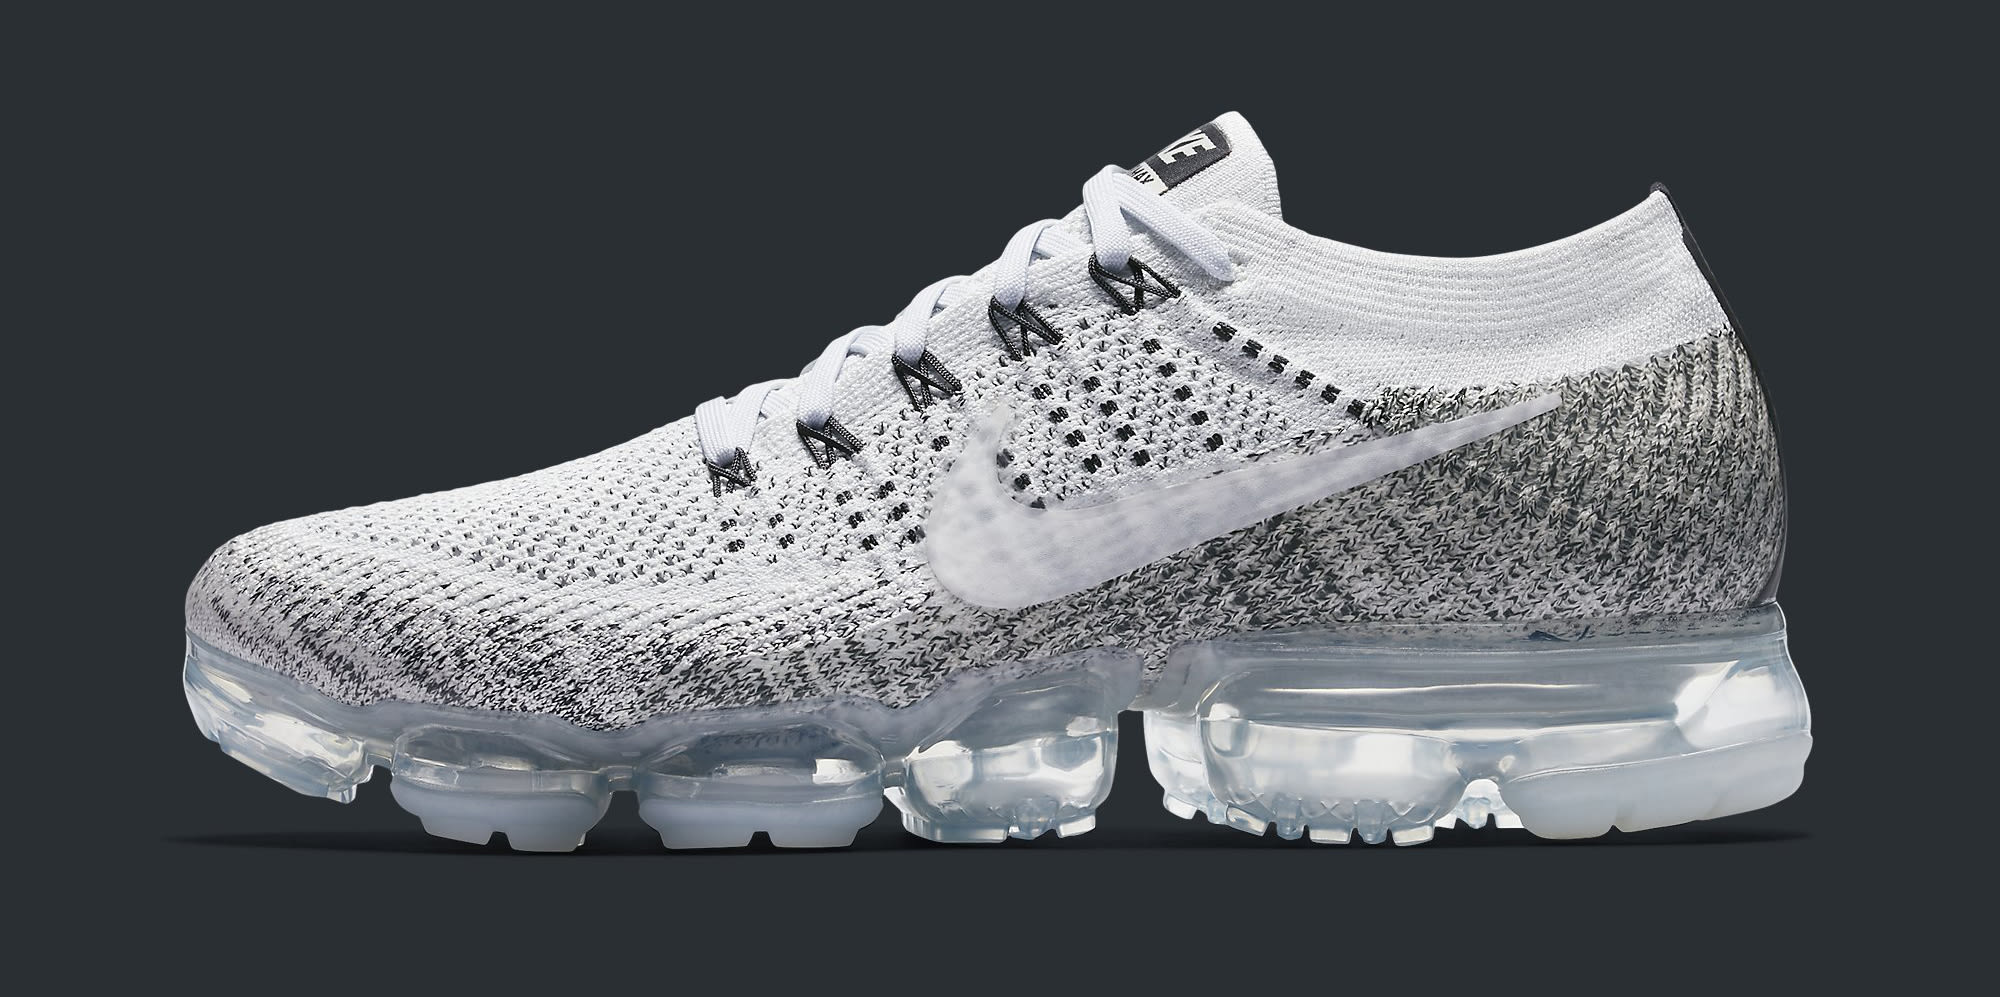 Men's COMME des GARCONS x Nike Vapormax Running Shoes